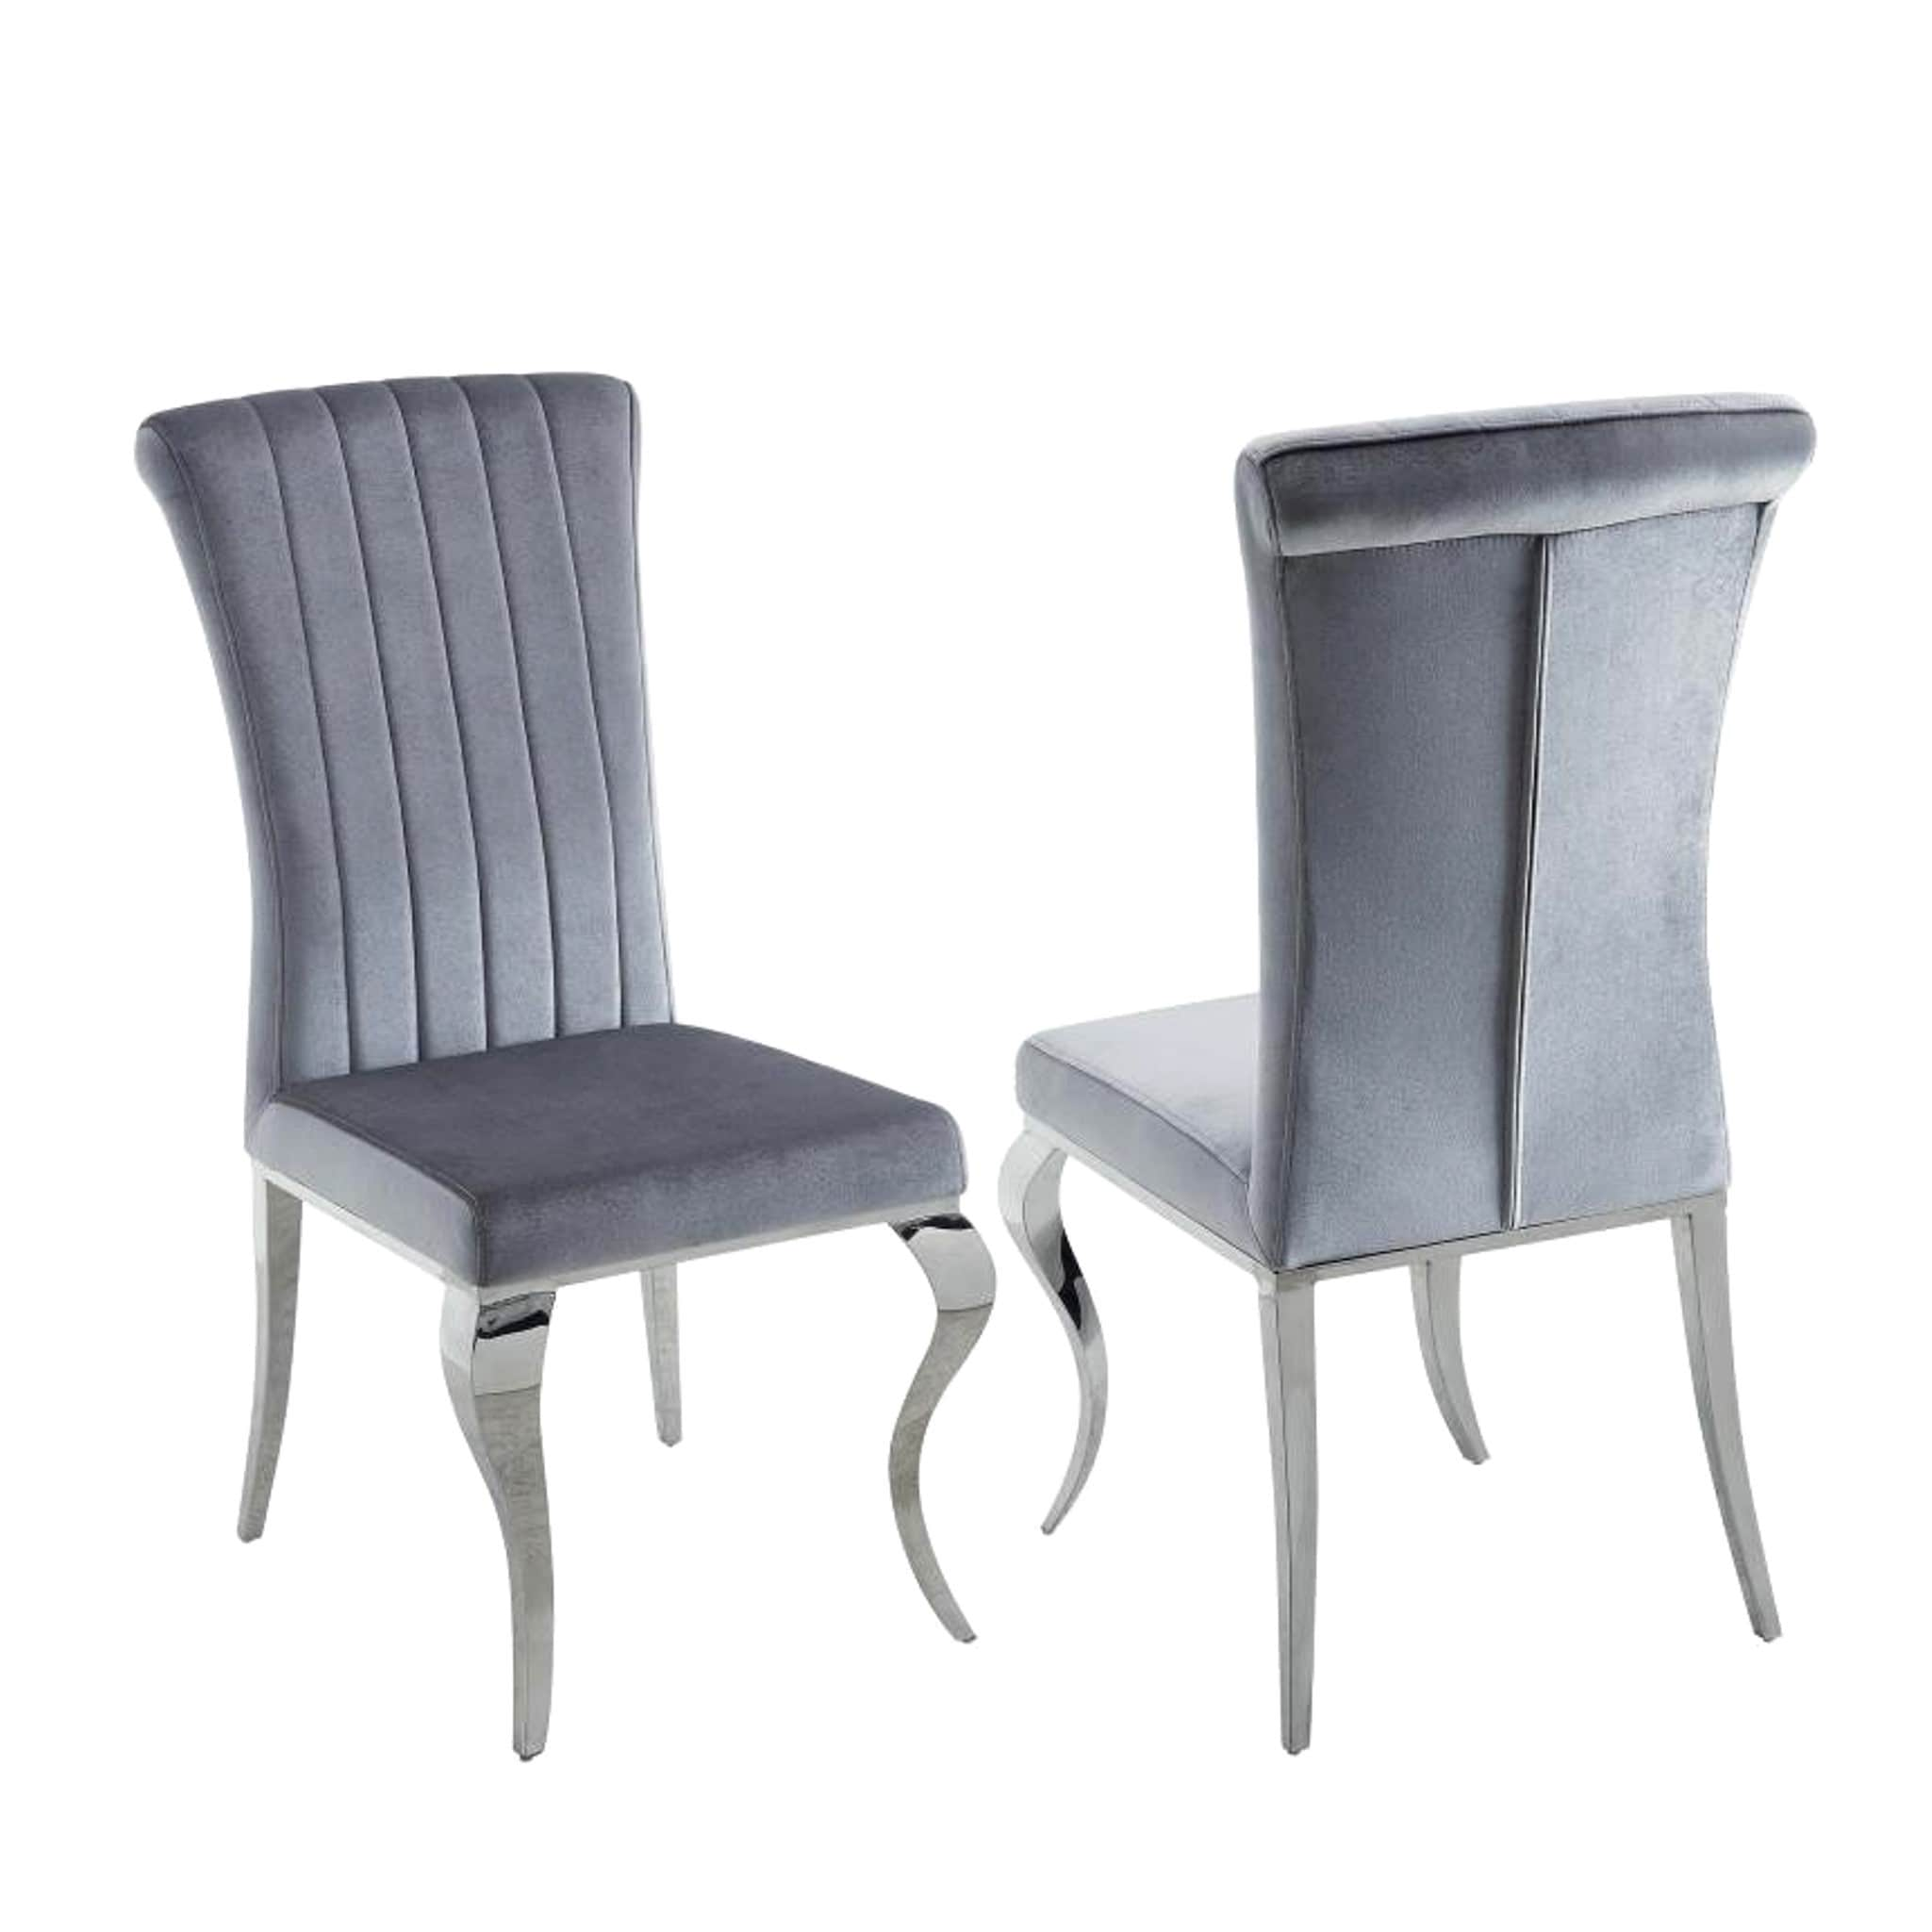 Merveilleux Shop Cabriole Design Stainless Steel With Grey /Silver Velvet Dining Chairs  (Set Of 4)   Free Shipping Today   Overstock.com   14393970